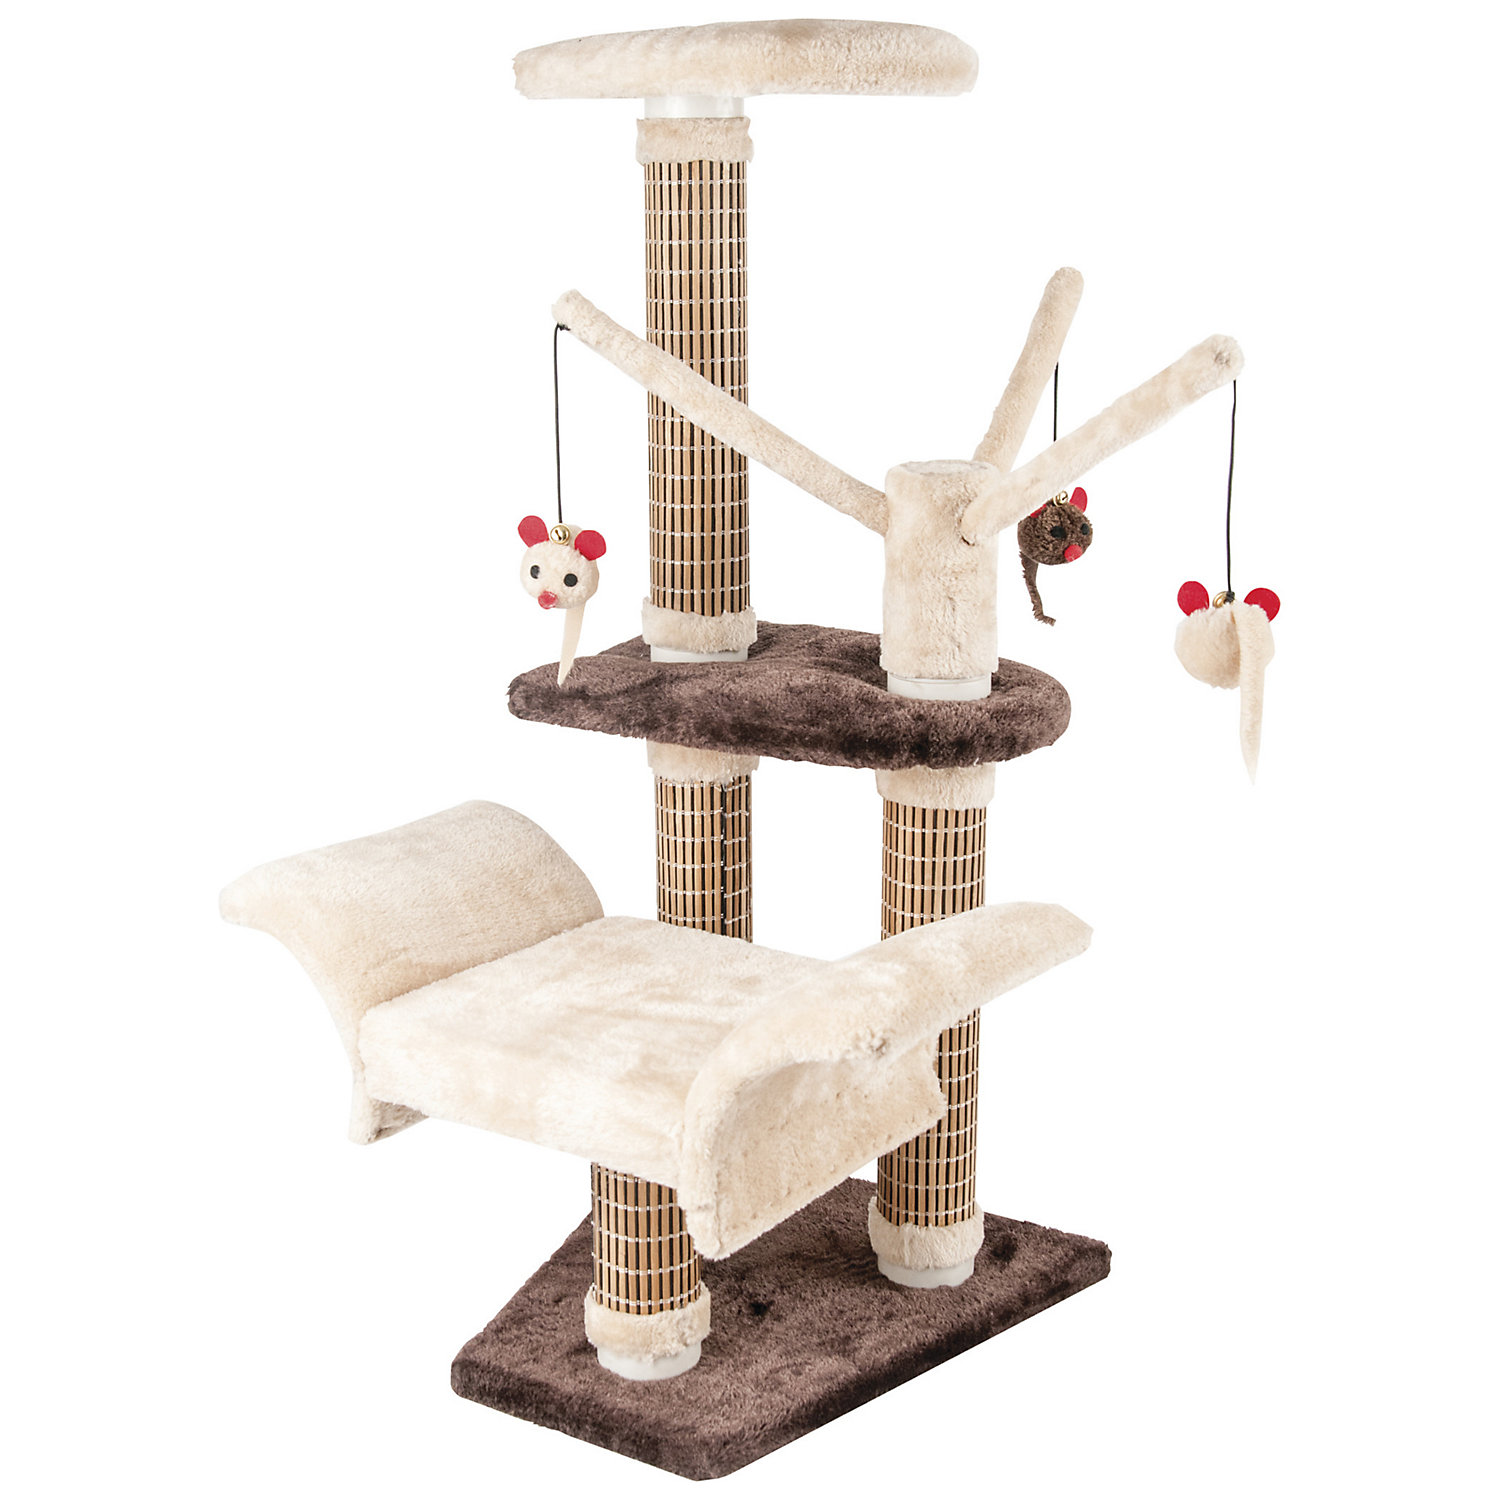 Penn Plax Cat Life SLS Scratcher Jungle Gym Activity Center